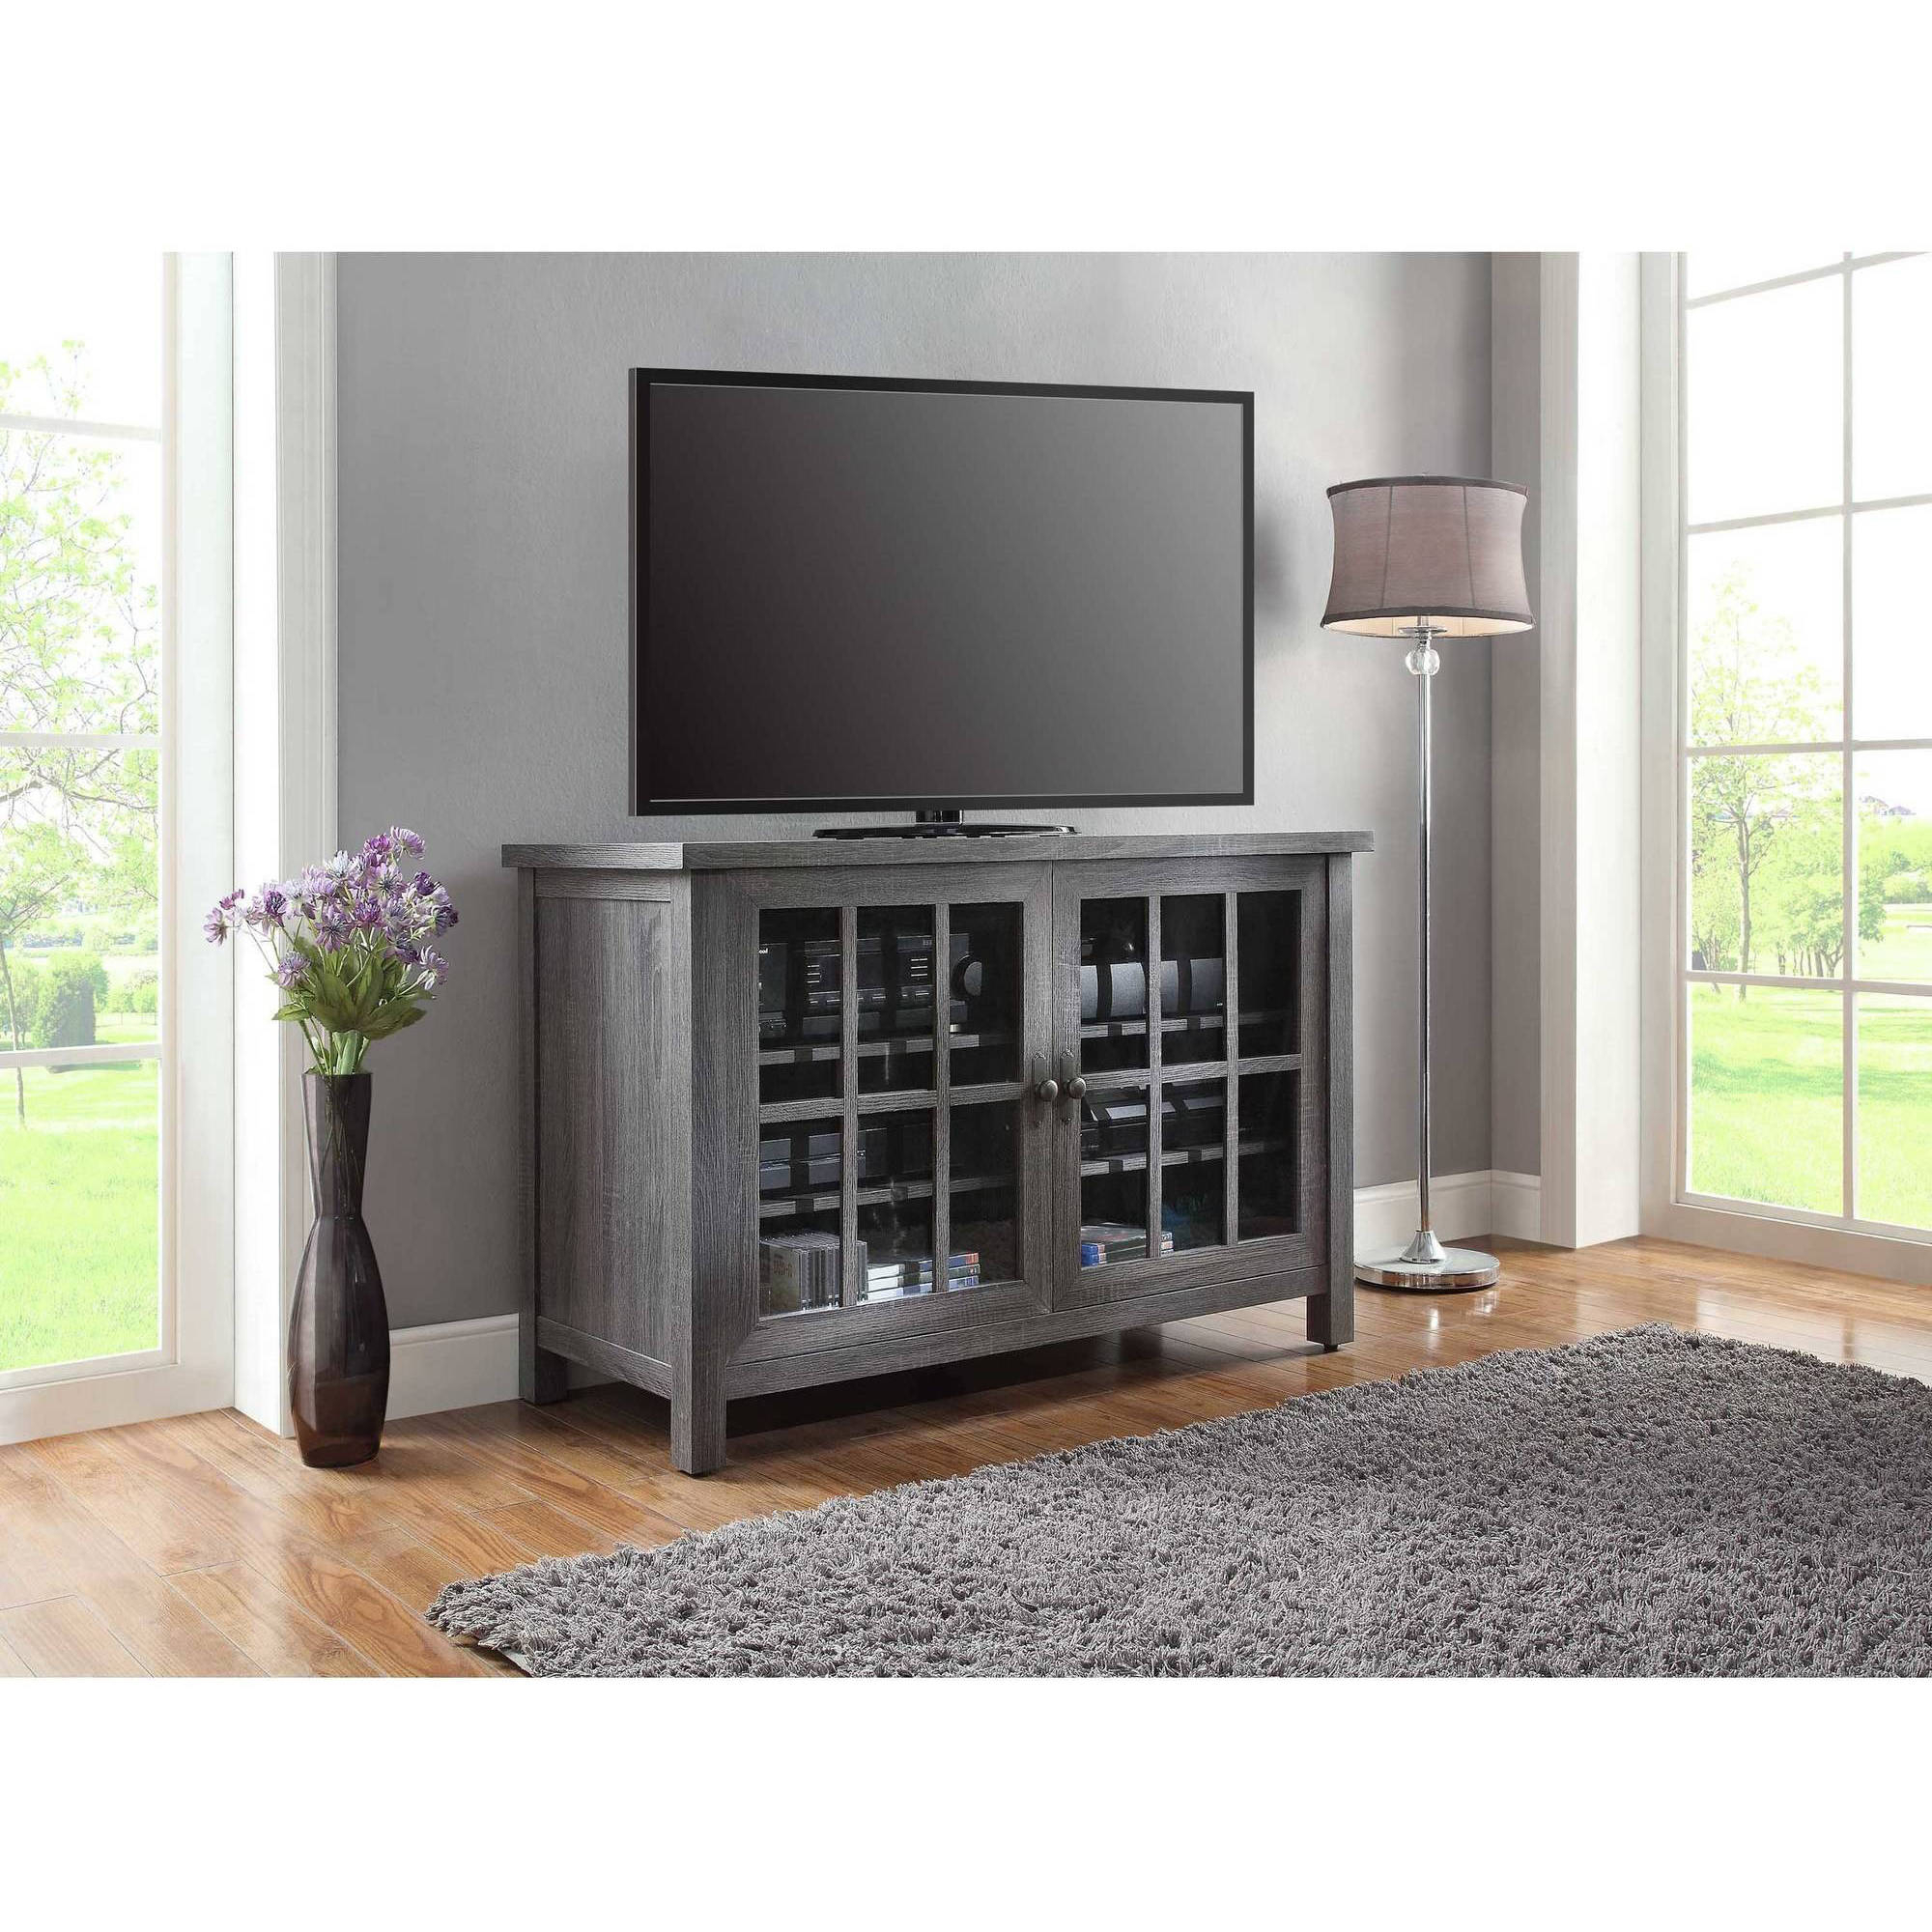 Better Homes And Gardens Oxford Square Tv Console For Tvs Up To 55 for Oxford 60 Inch Tv Stands (Image 10 of 30)